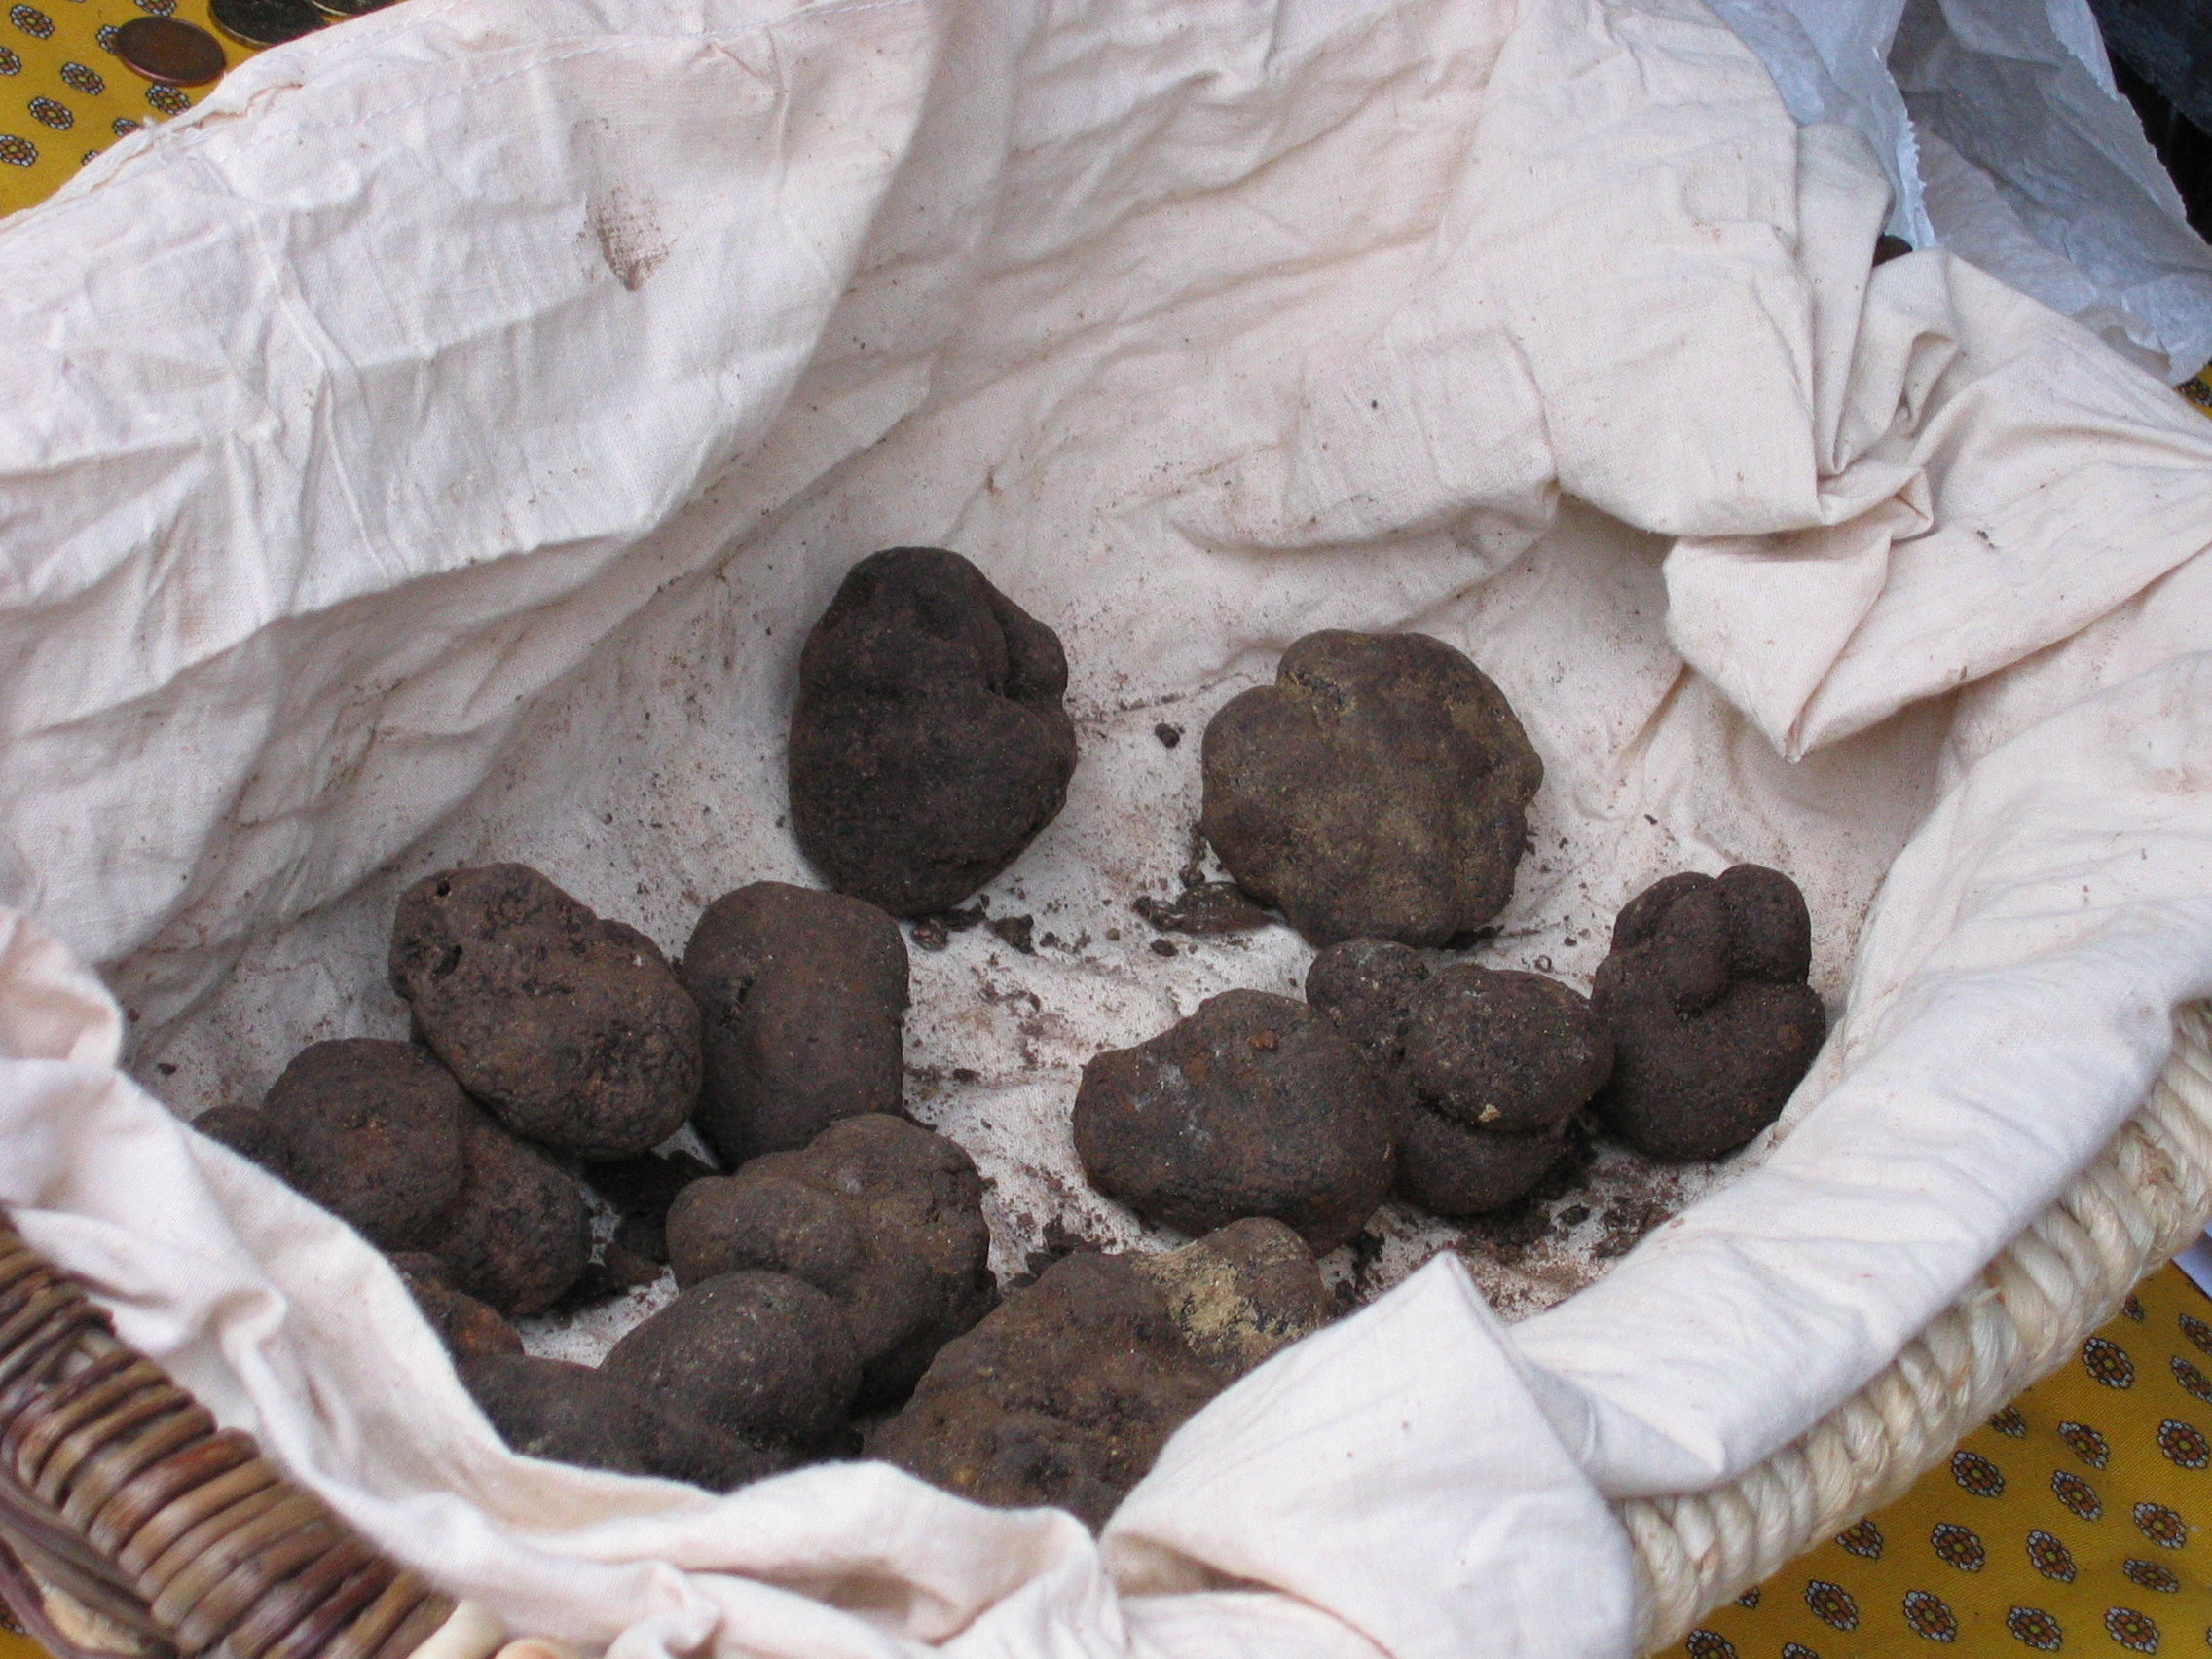 Photo taken by Poppy in January 2006. Truffle from Mont-Ventoux fra Wikpiedia